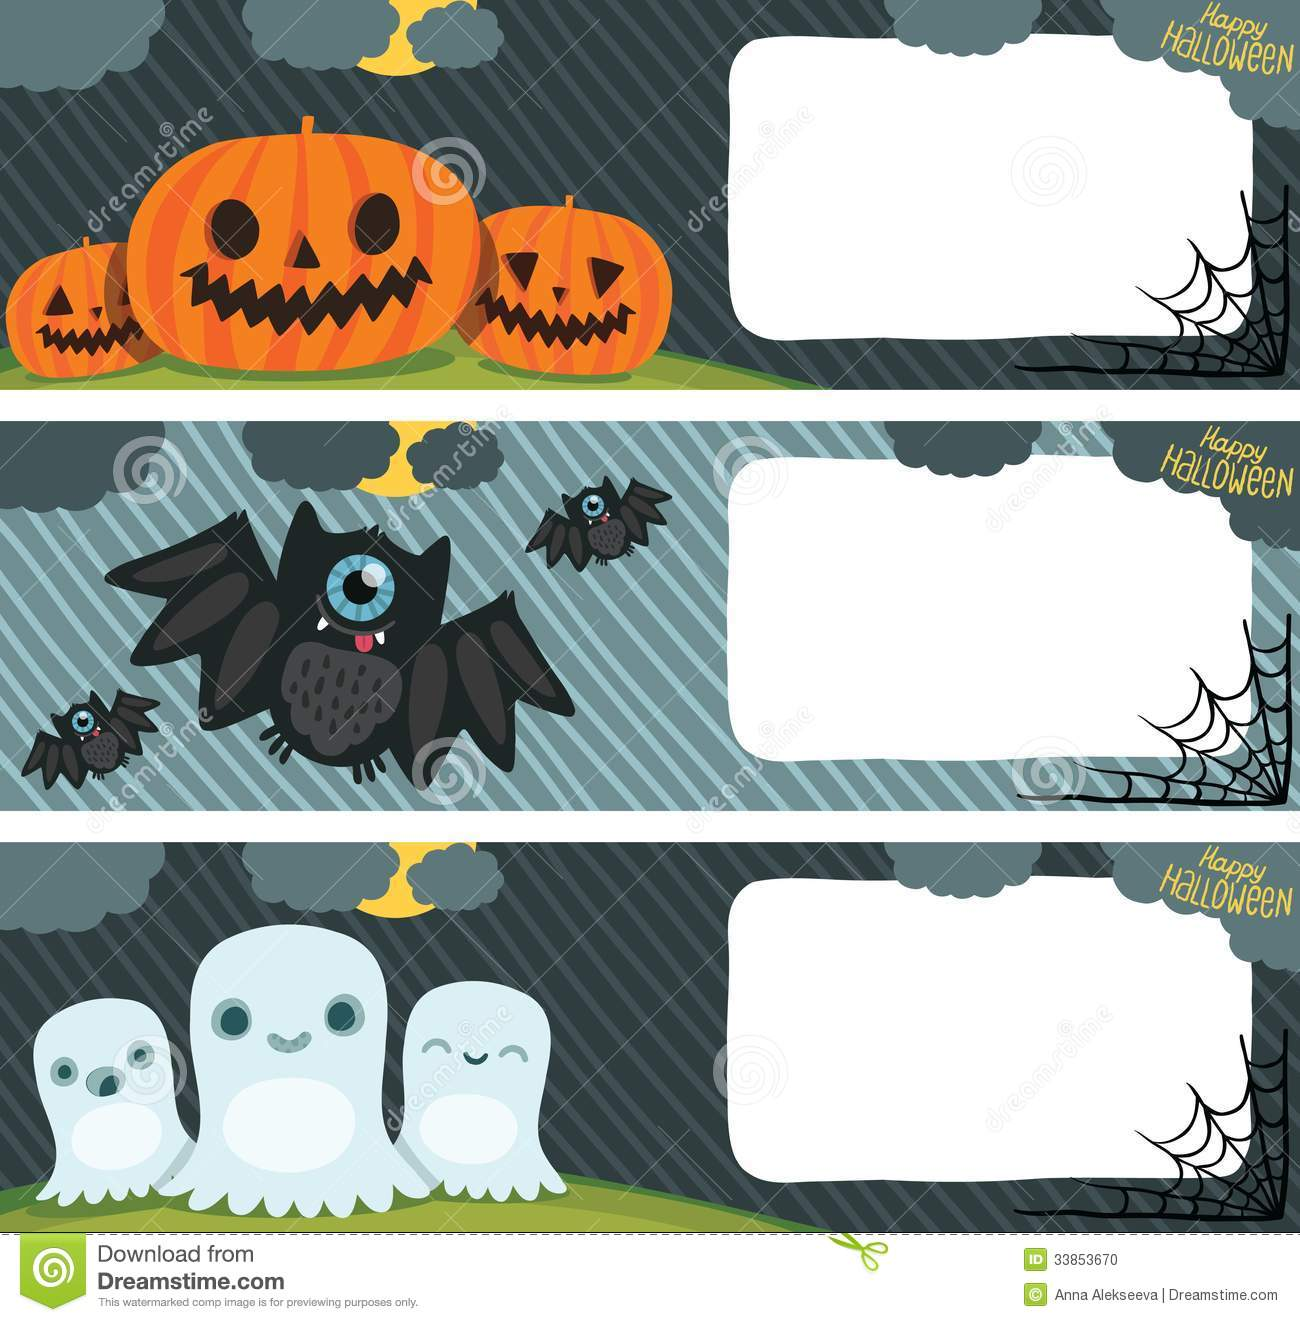 Happy Halloween Card Set With Pumpkin, Bat, Ghost. Stock Photo